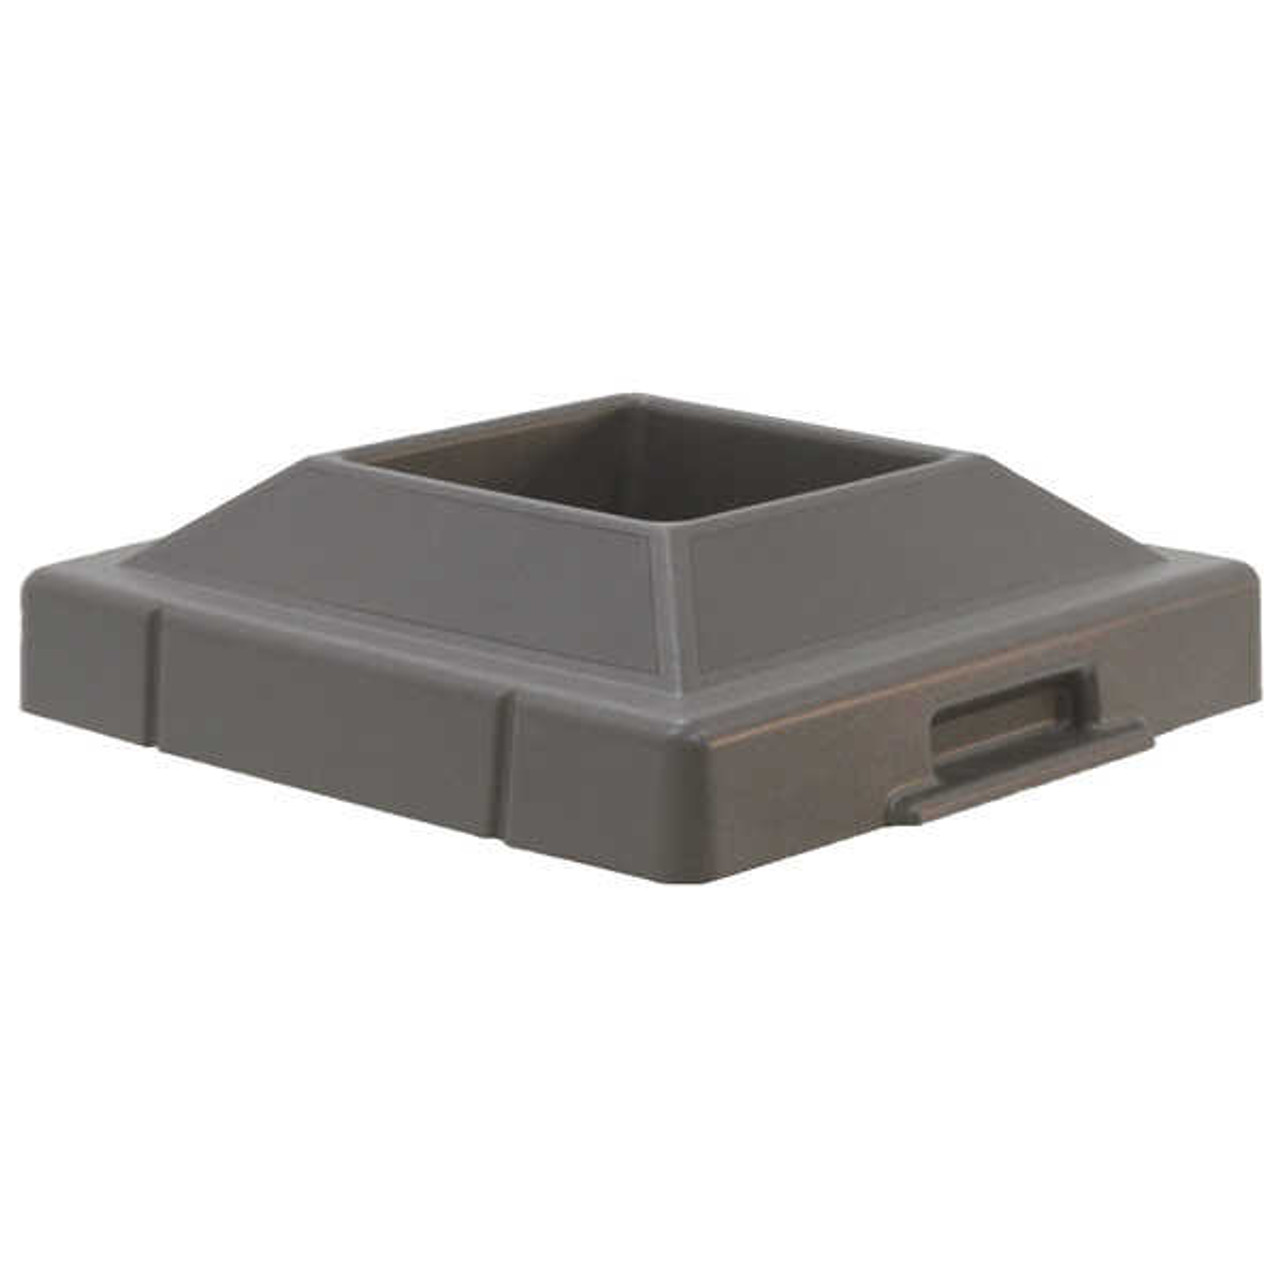 20.5 x 20.5 Pitch In Plastic Lids TF1420 for Square Trash Cans GRAY